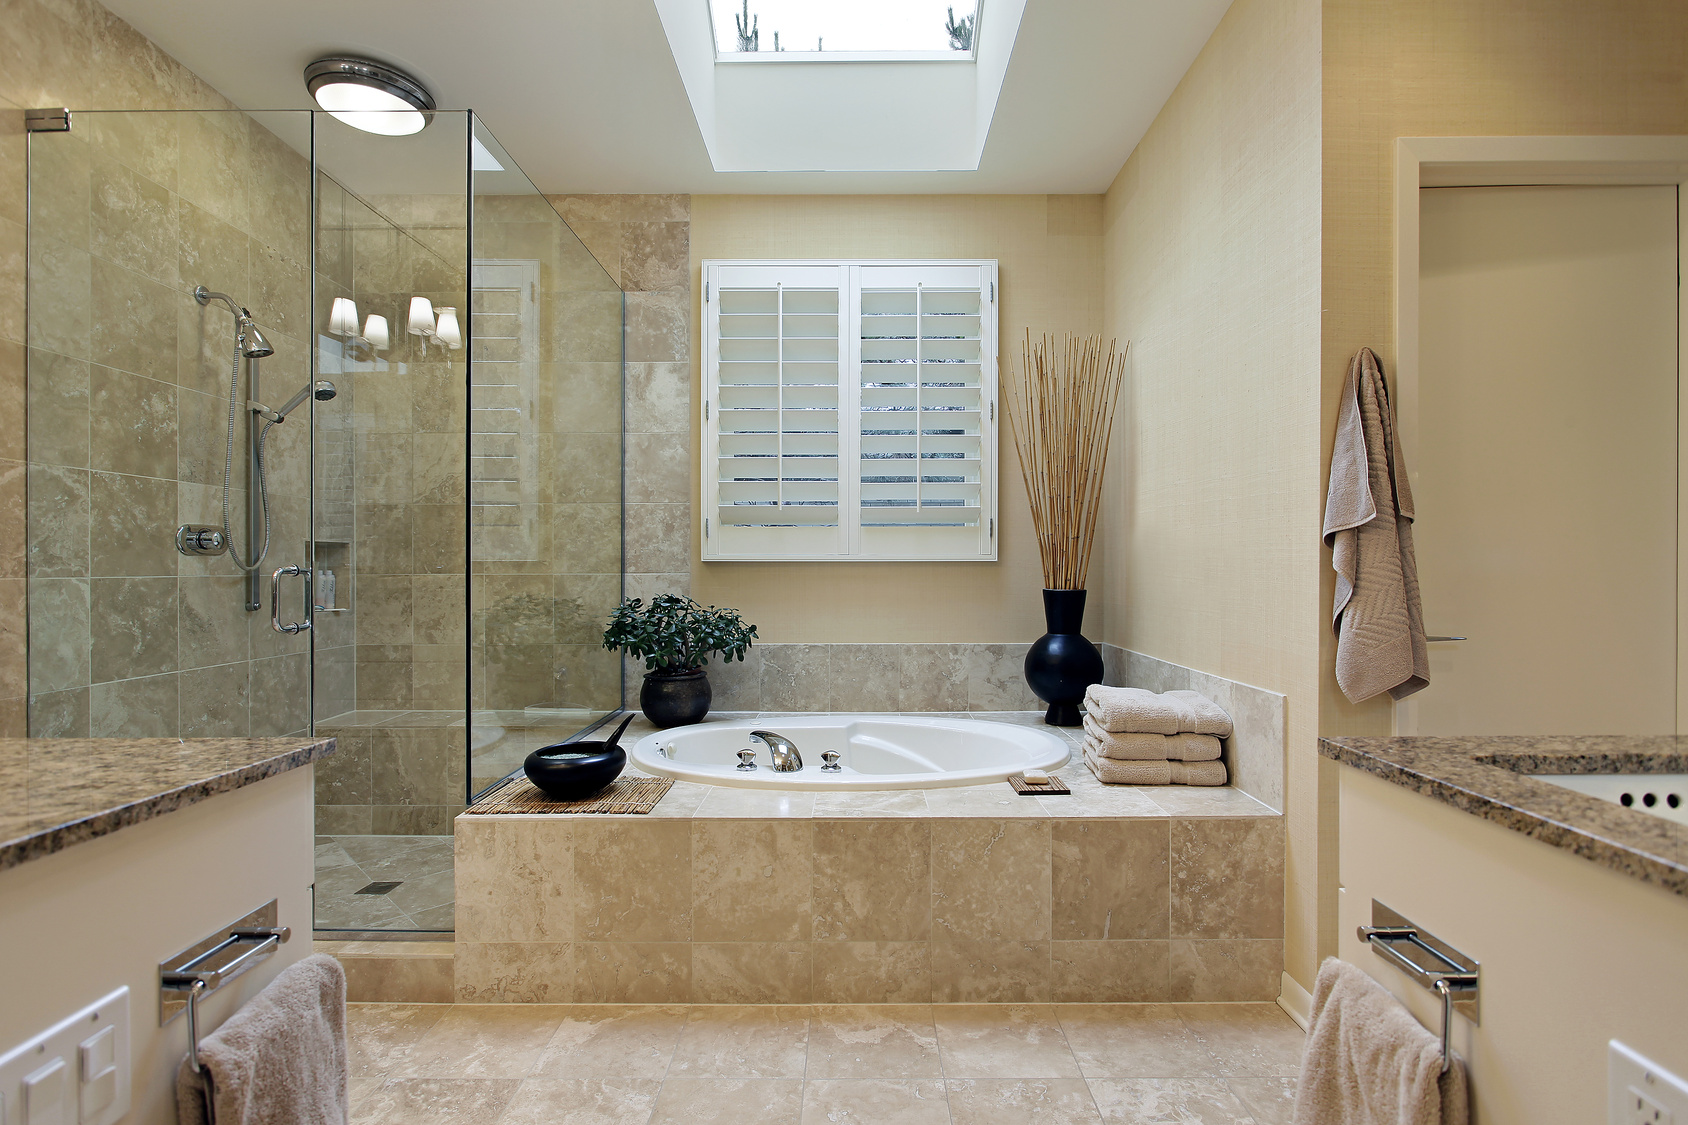 High Quality Bathroom Remodeling Showers Photo   1